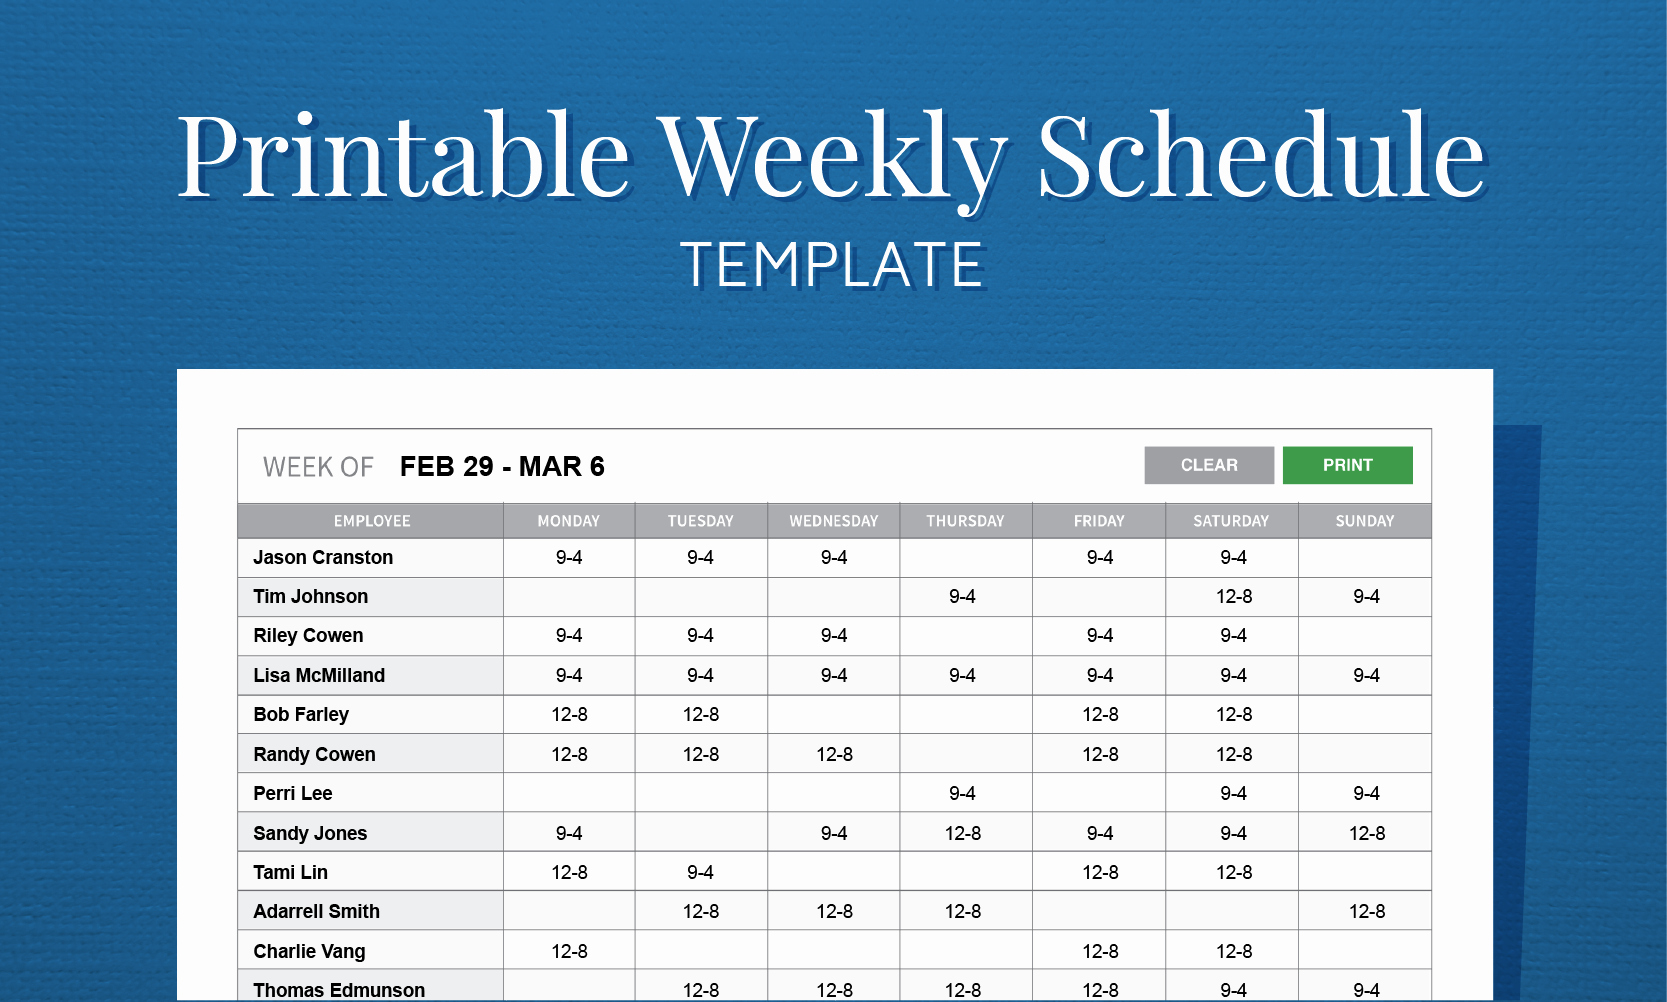 Weekly Work Schedule Template Free Awesome Free Printable Weekly Work Schedule Template for Employee